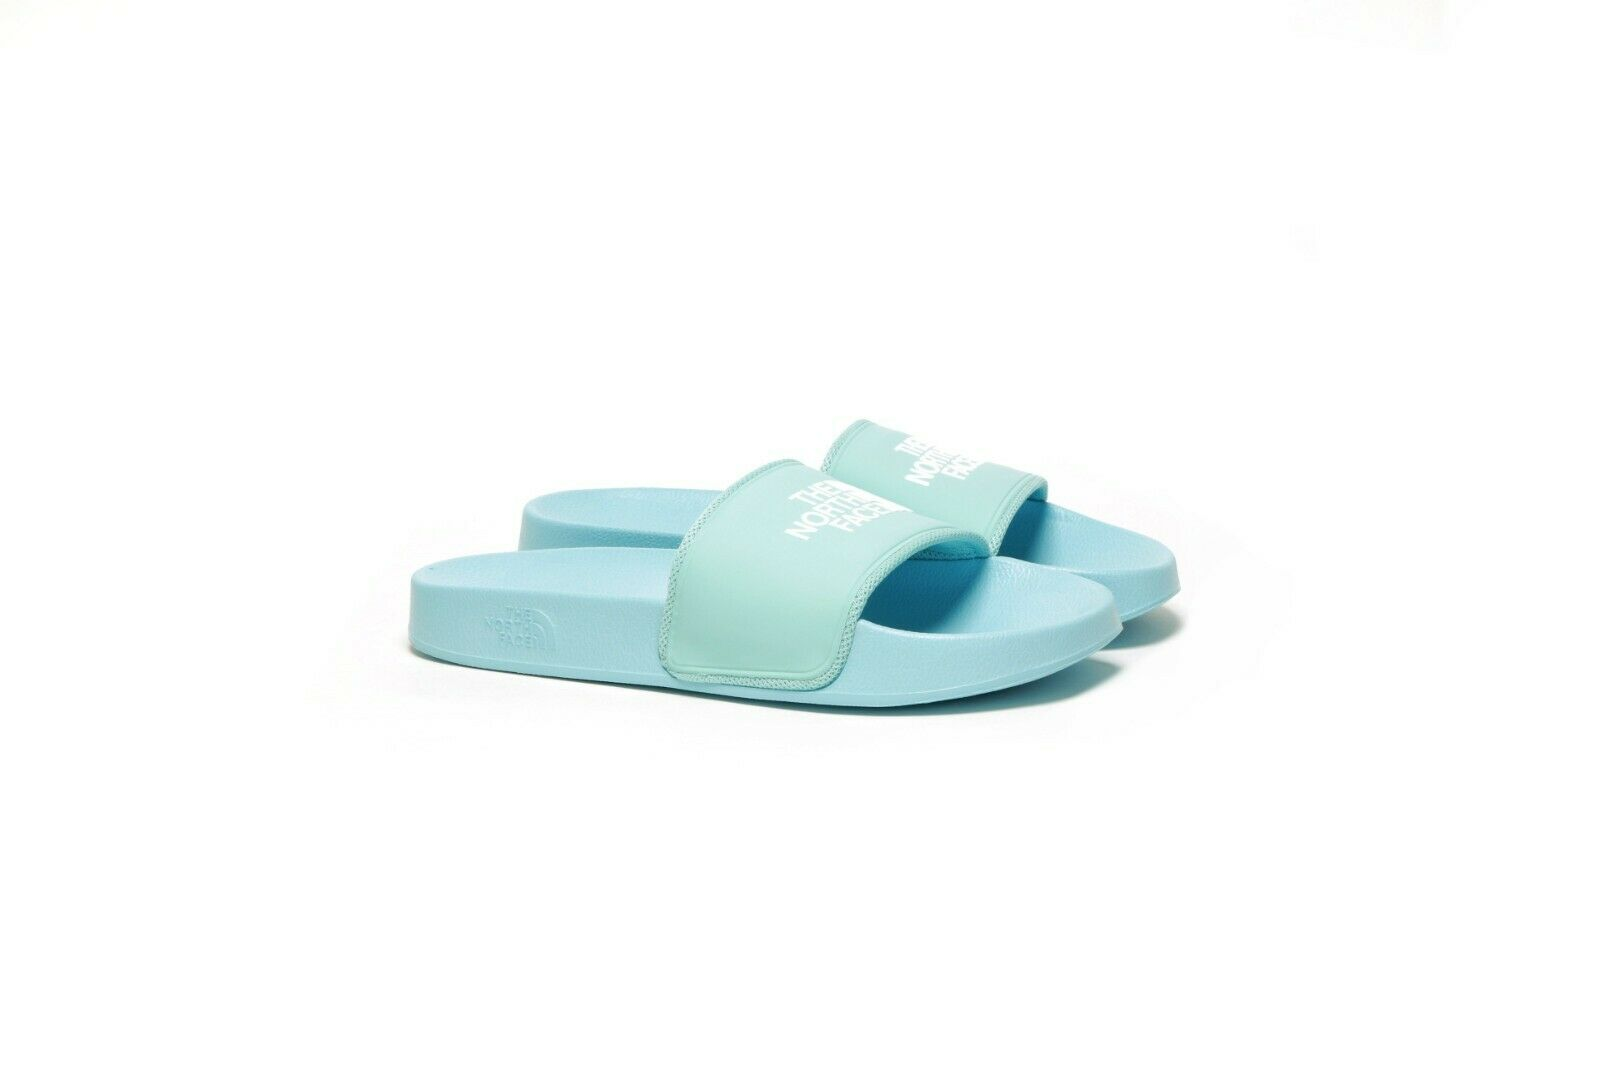 The North Face WOMEN'S BASE CAMP SLIDE II - CANAL BLUE/WHITE